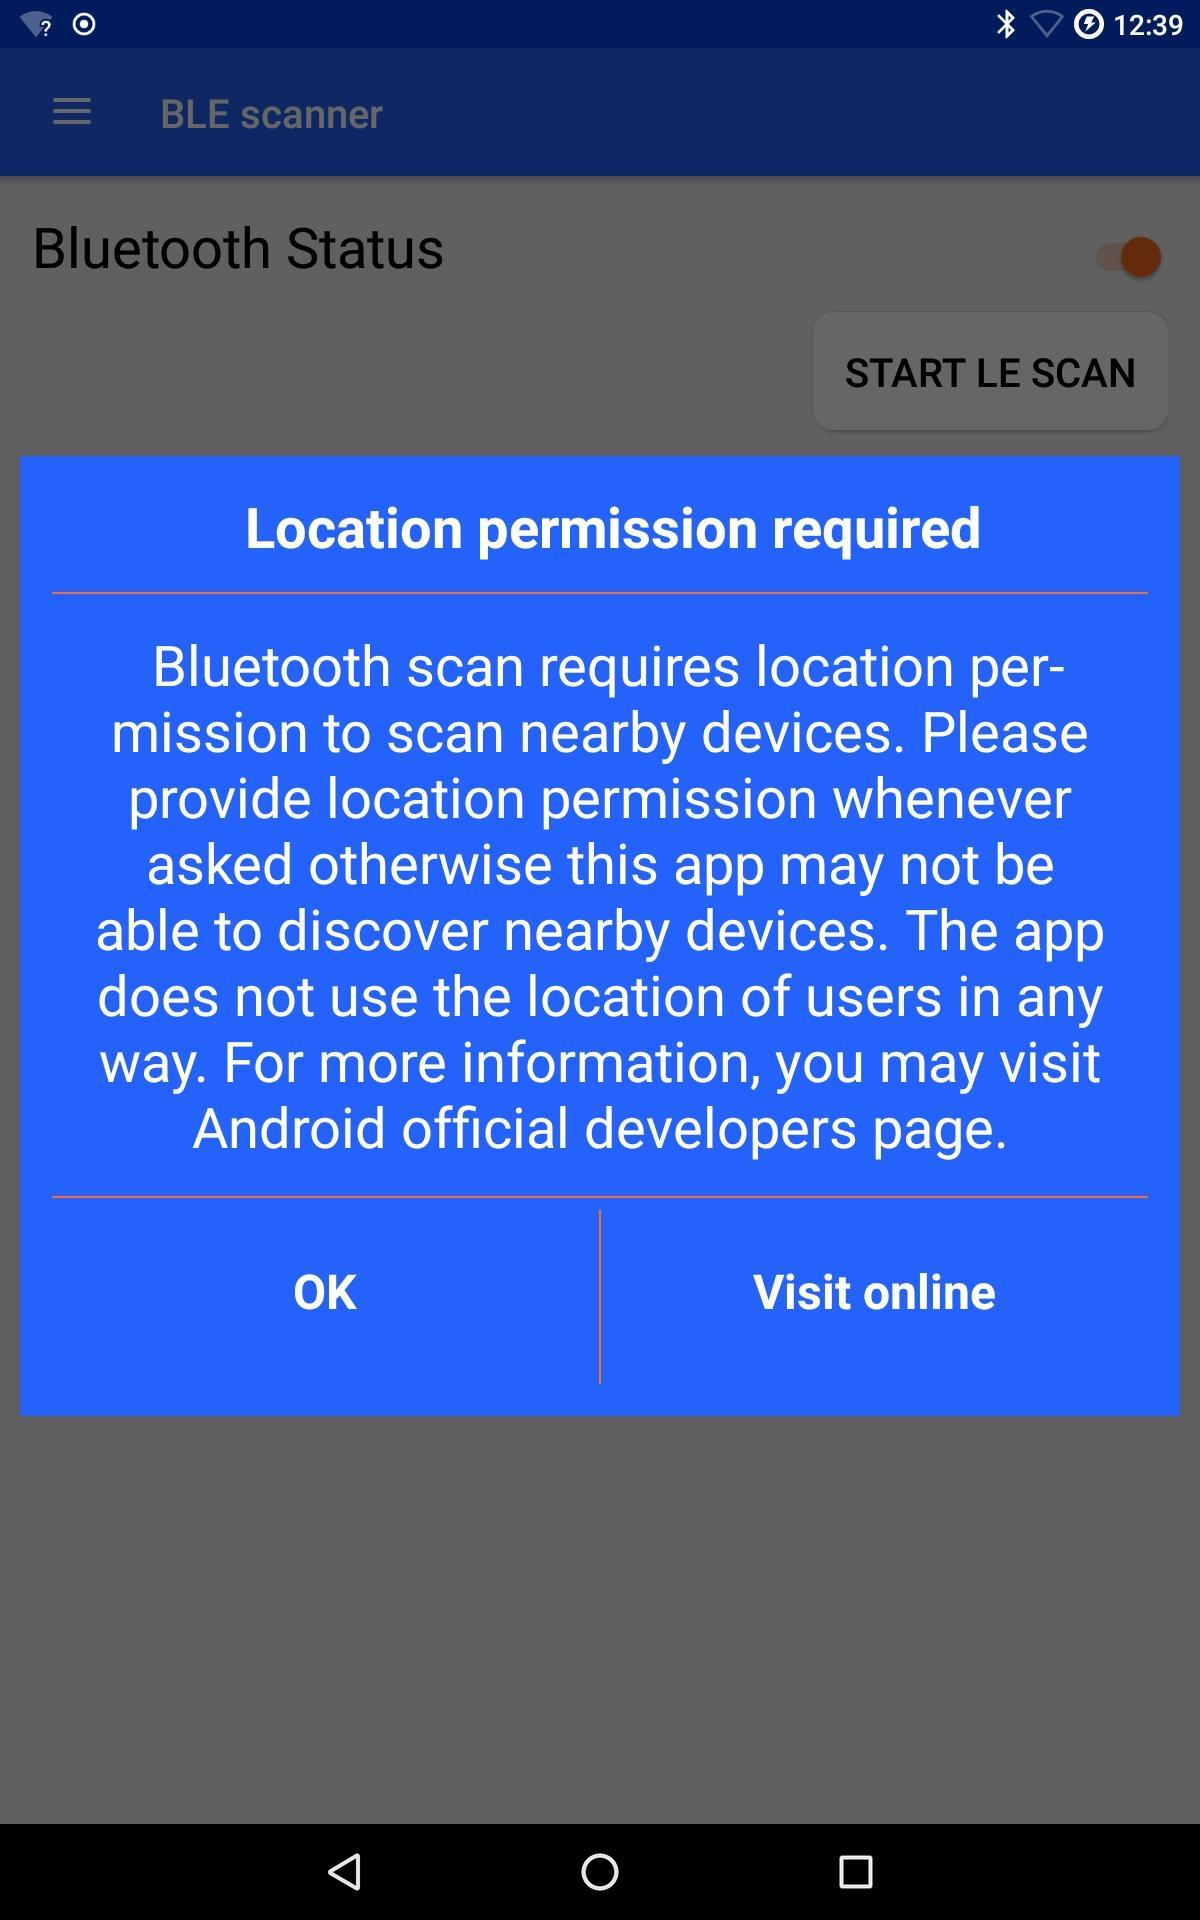 BLE Scanner - ibeacon Bluetooth auto connect for Android